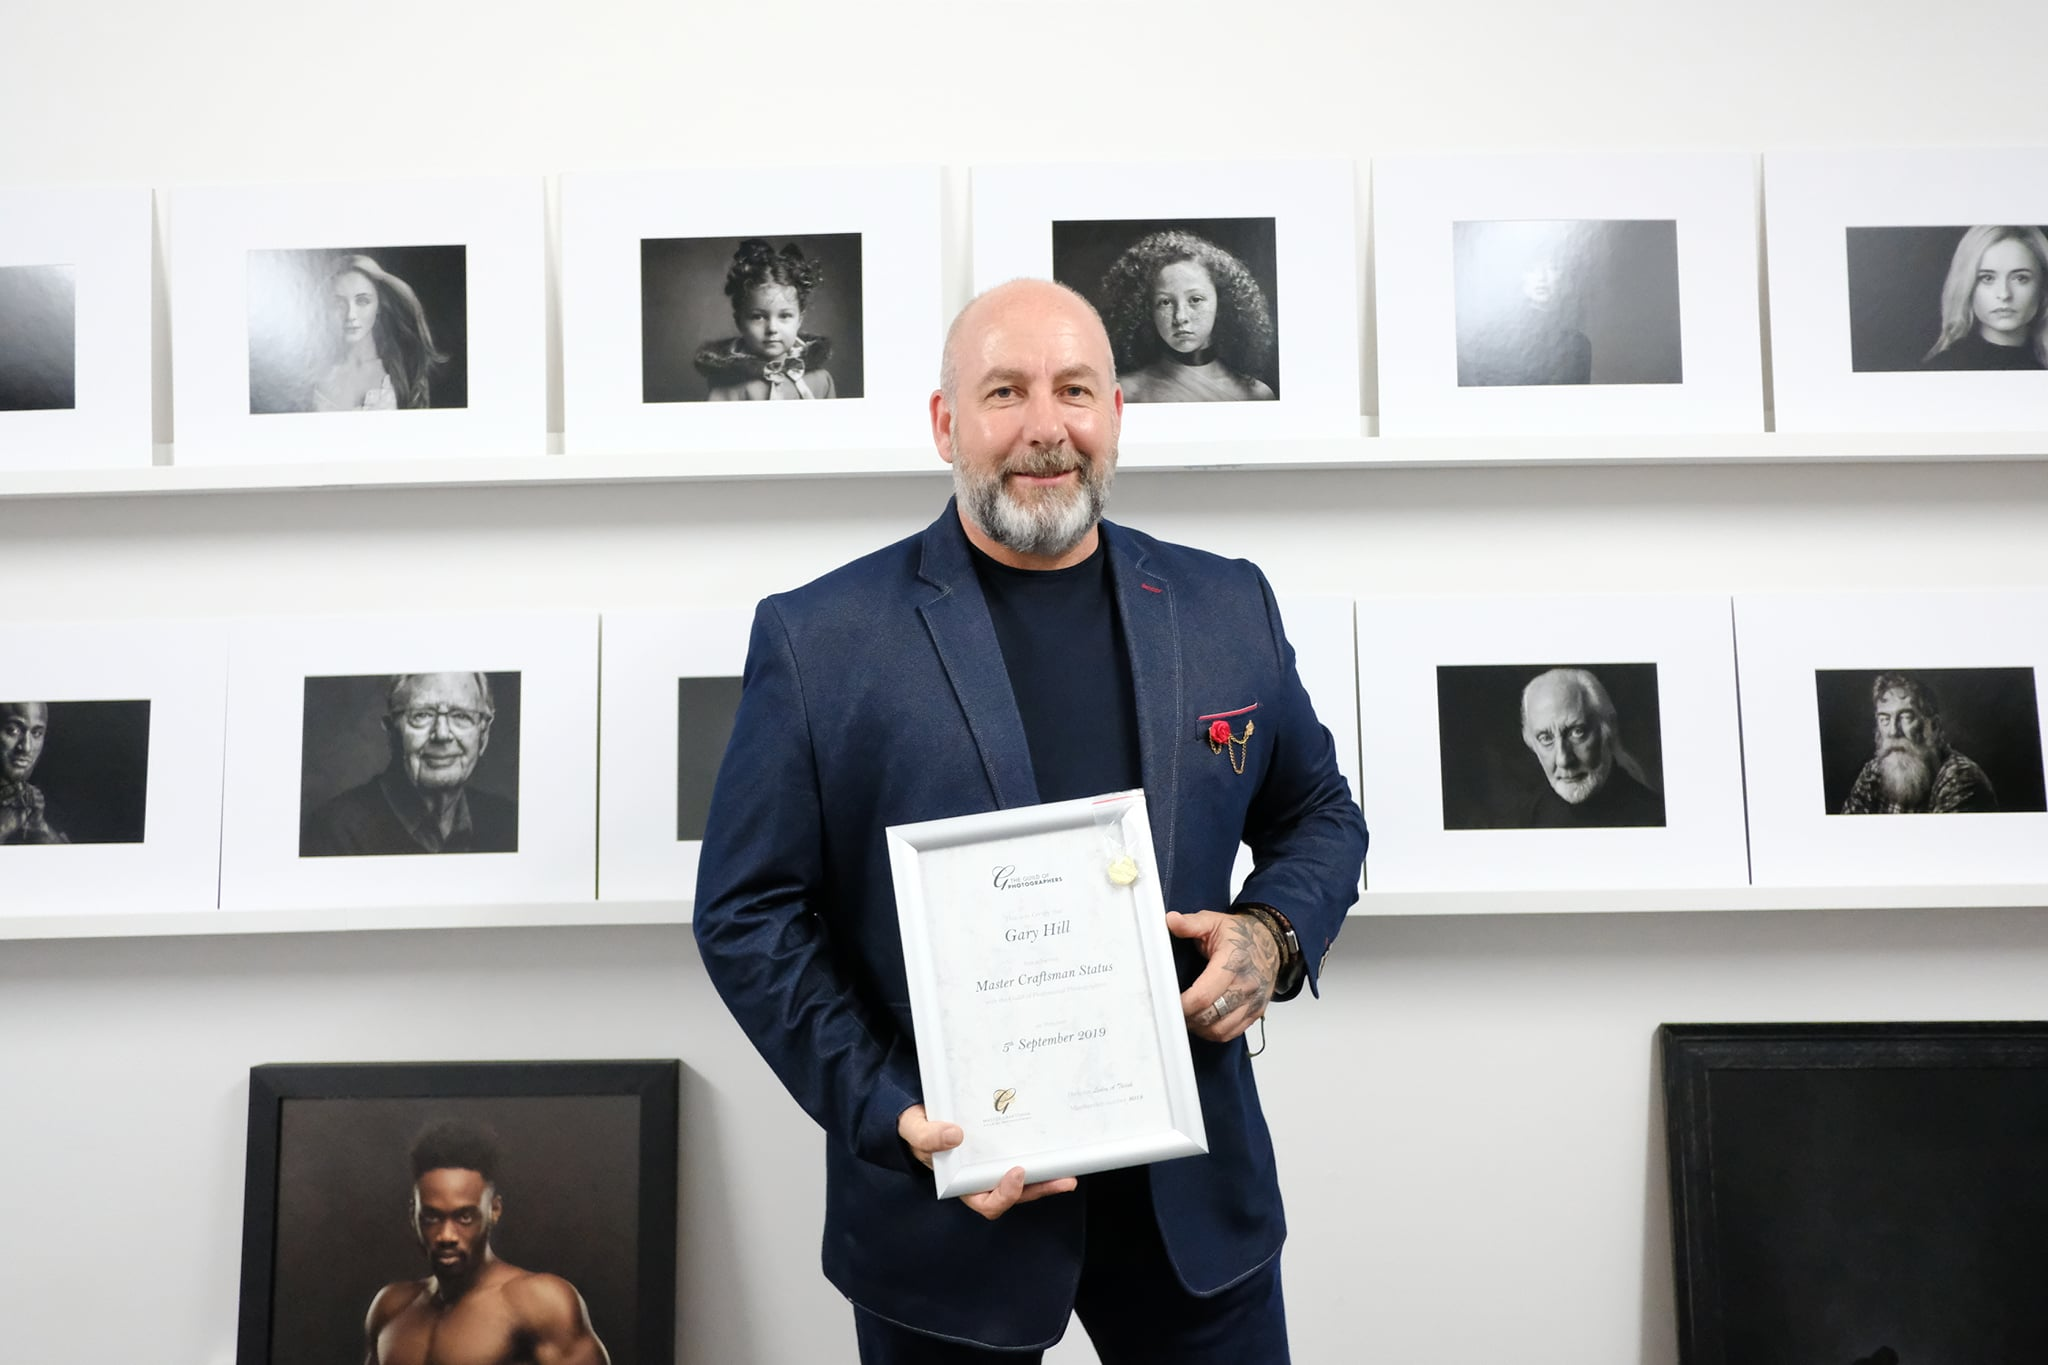 Gary Hill Master Craftsman award for timeless portraits